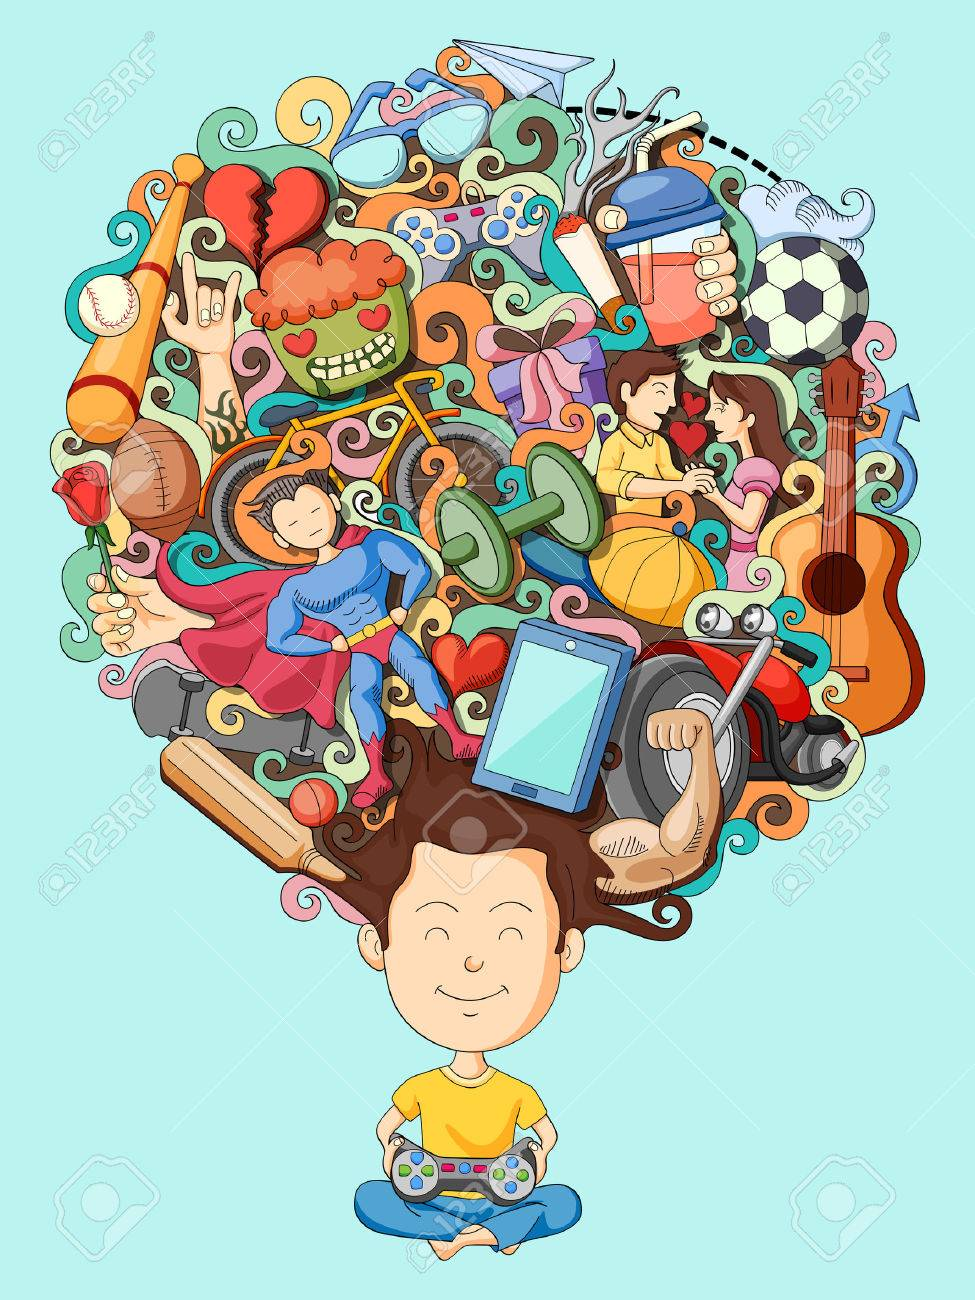 vector illustration of dream and thought of teenage boy - 55751731